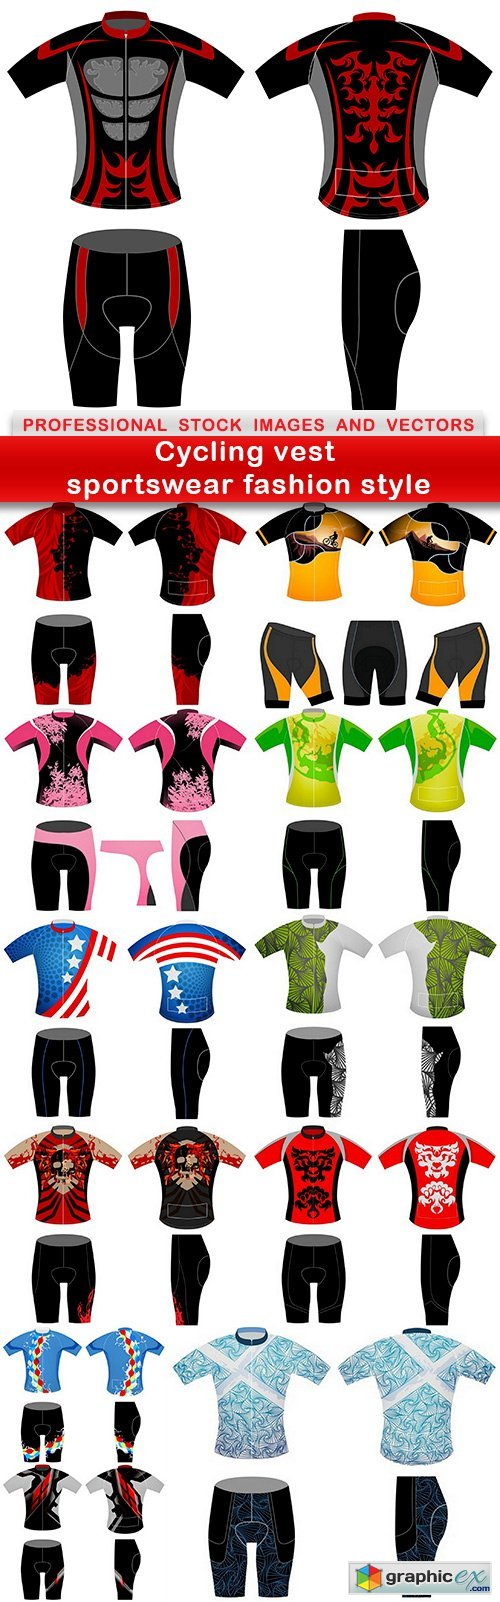 Cycling vest sportswear fashion style - 12 EPS